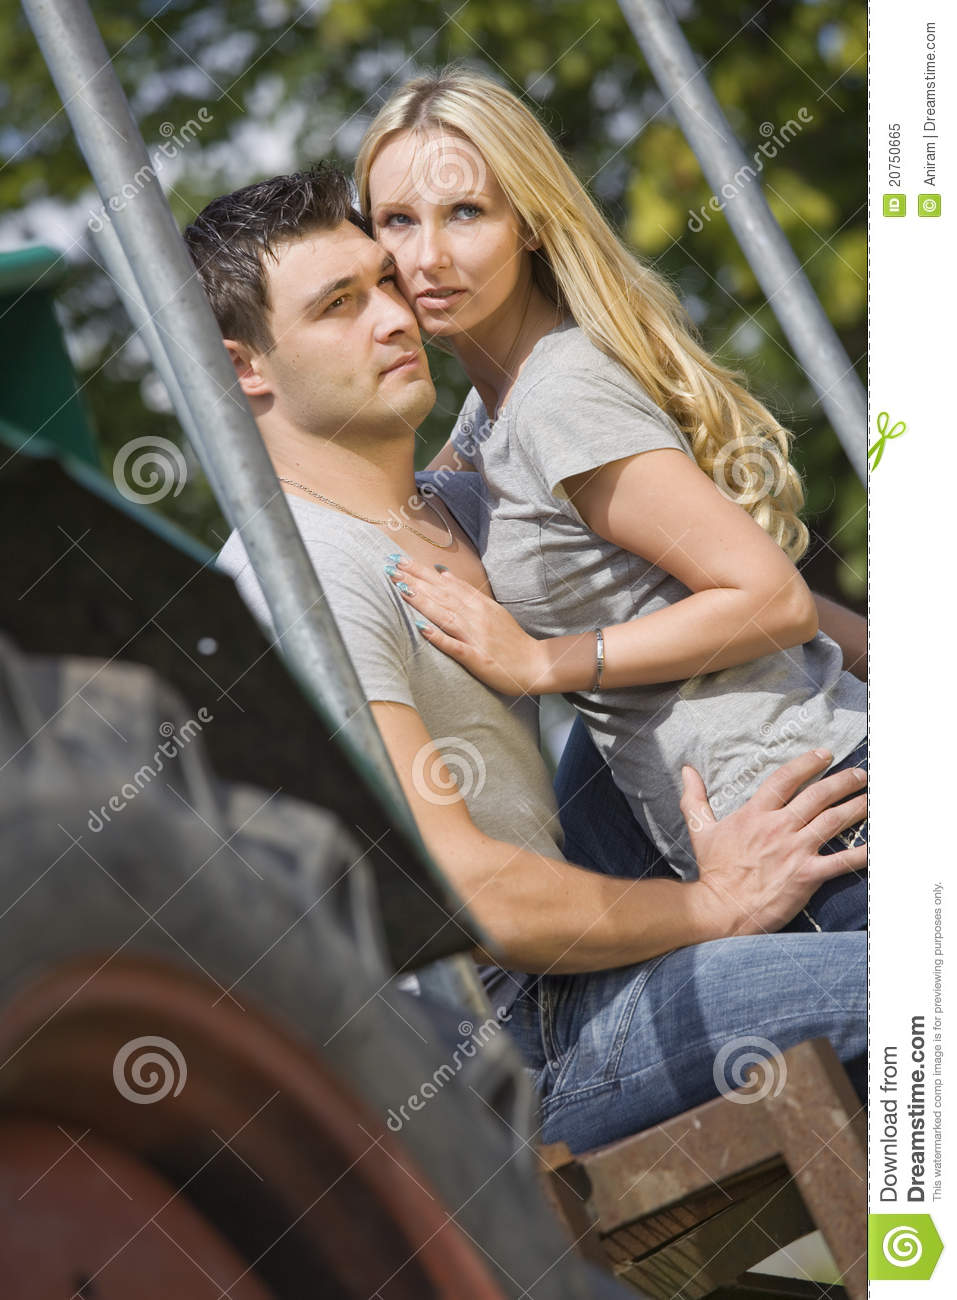 Couple On Tractor : Young couple on tractor royalty free stock photo image